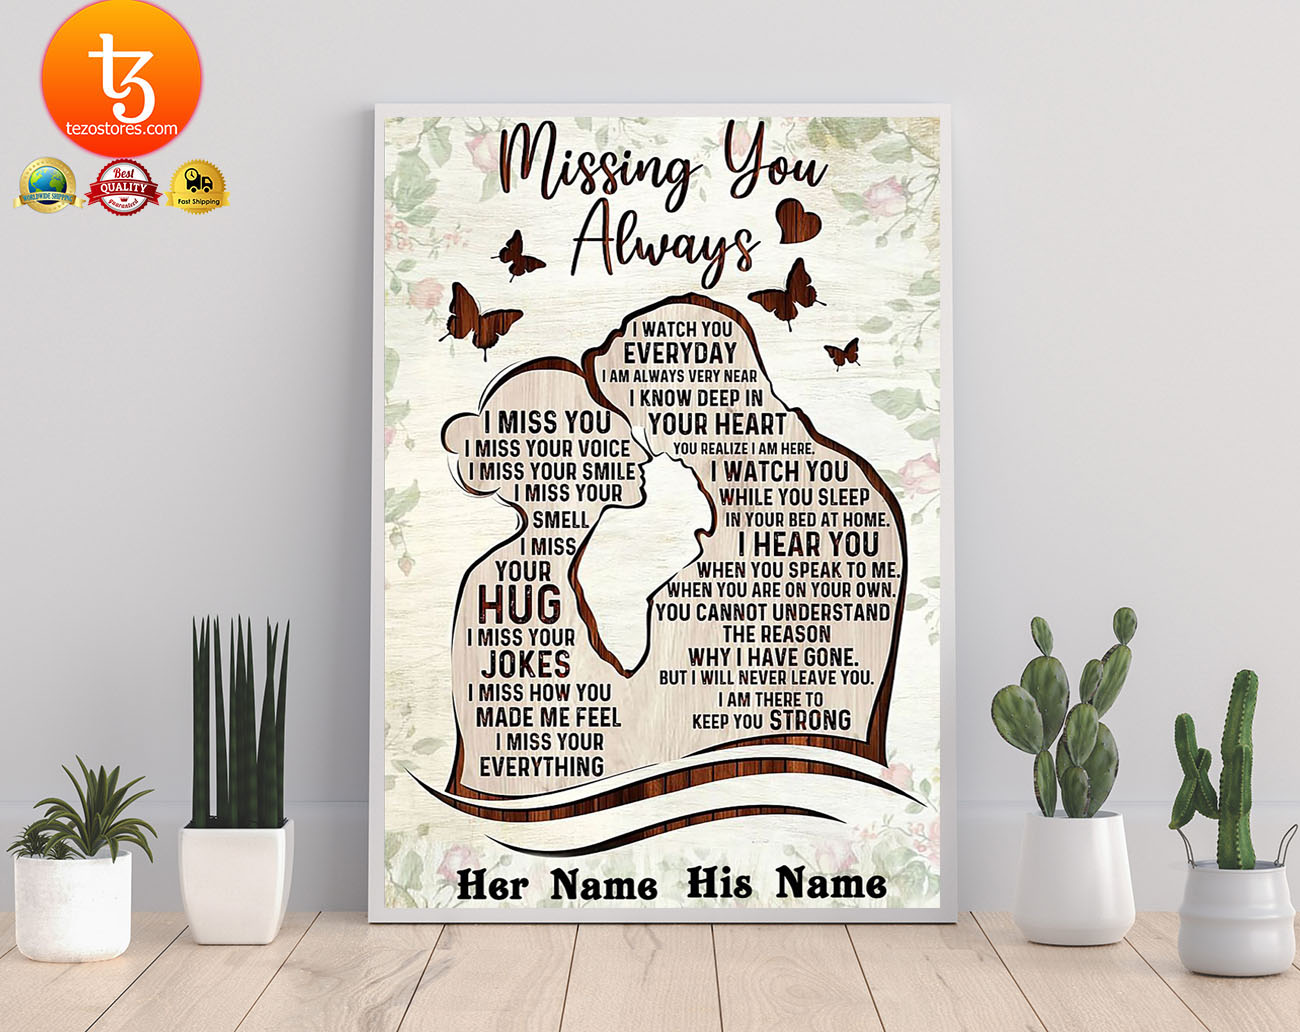 Missing you always I watch you everyday custom personalized name poster 21